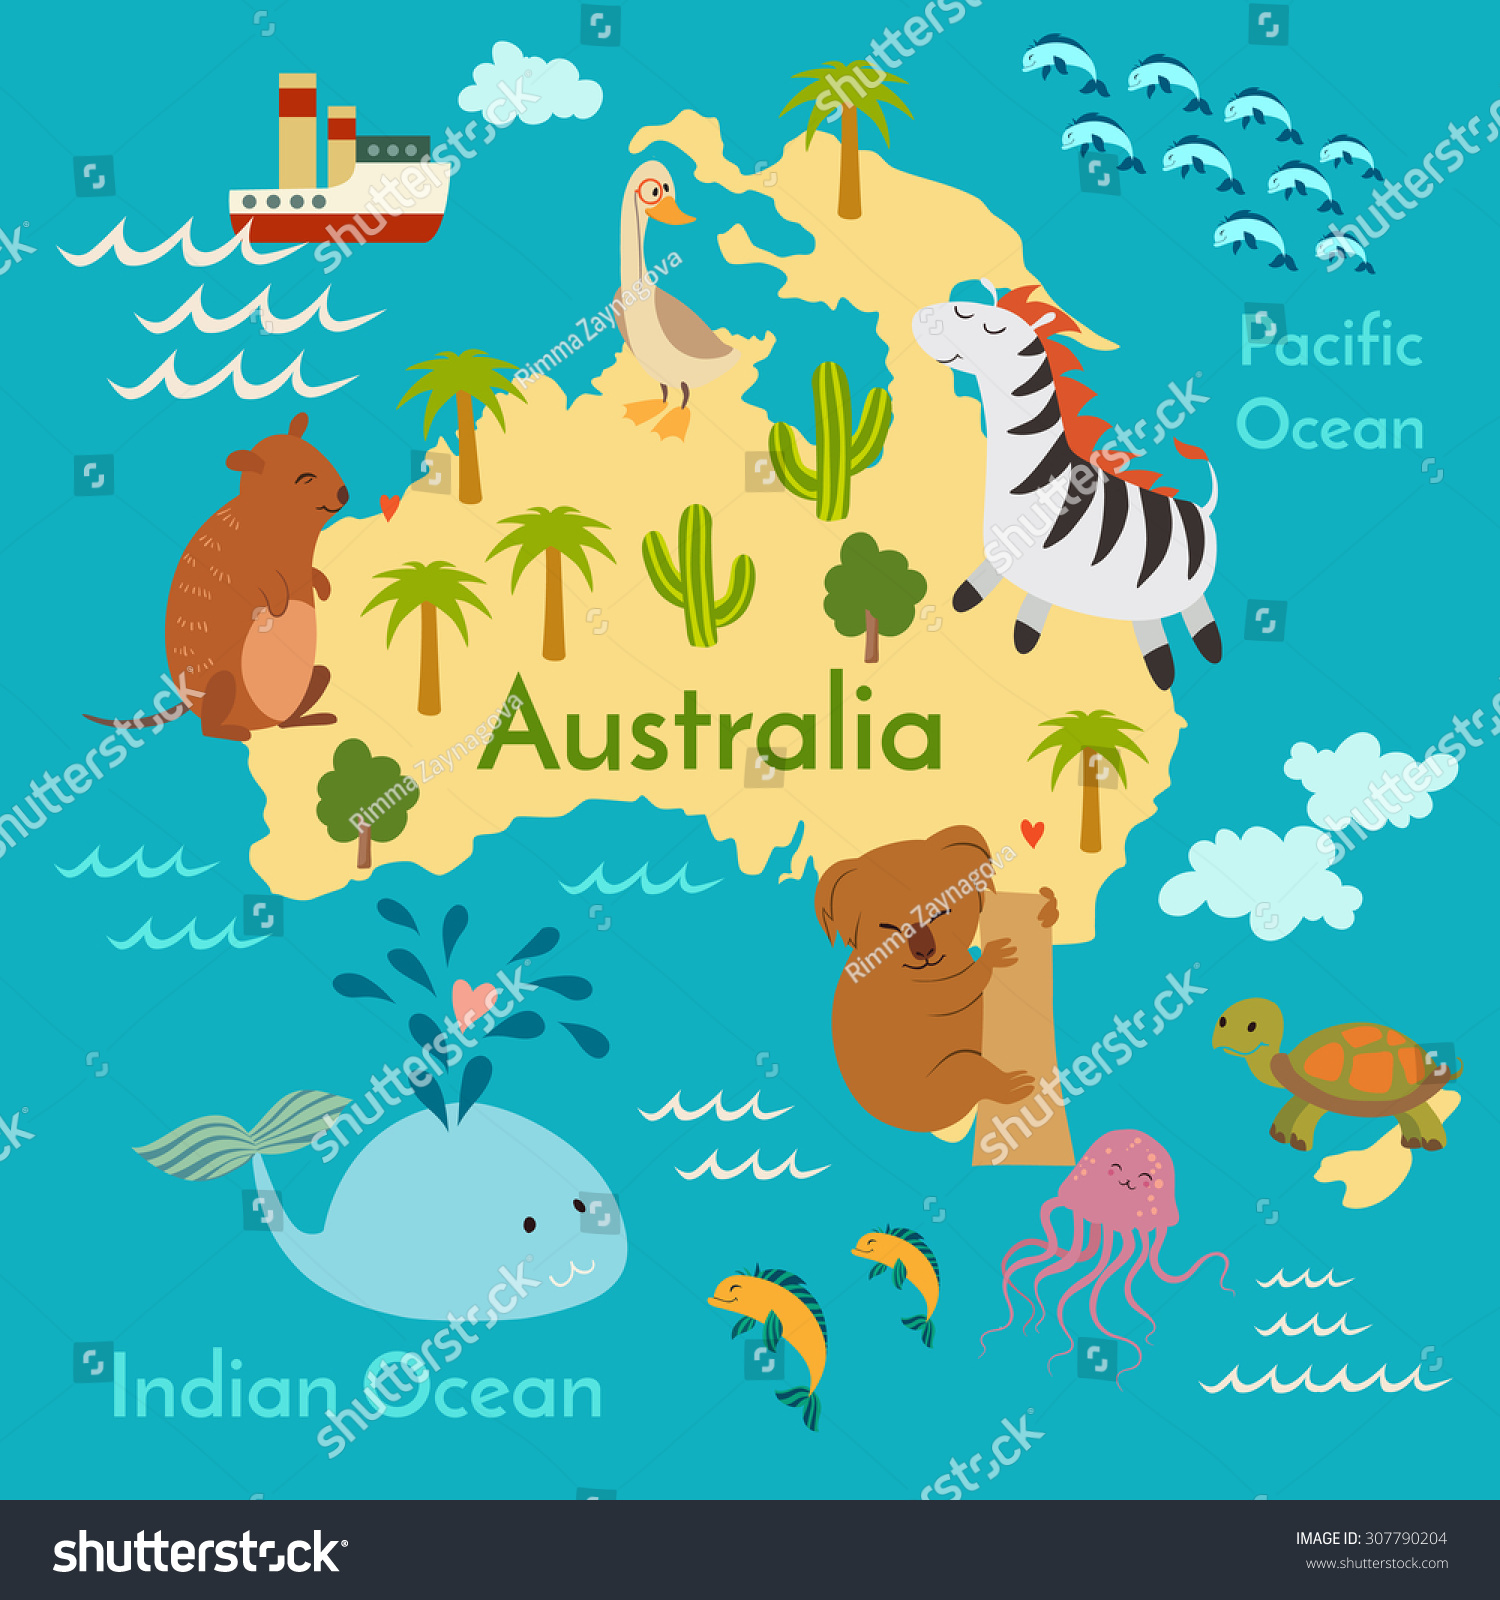 animals world map australia vector illustration preschool baby continents oceans